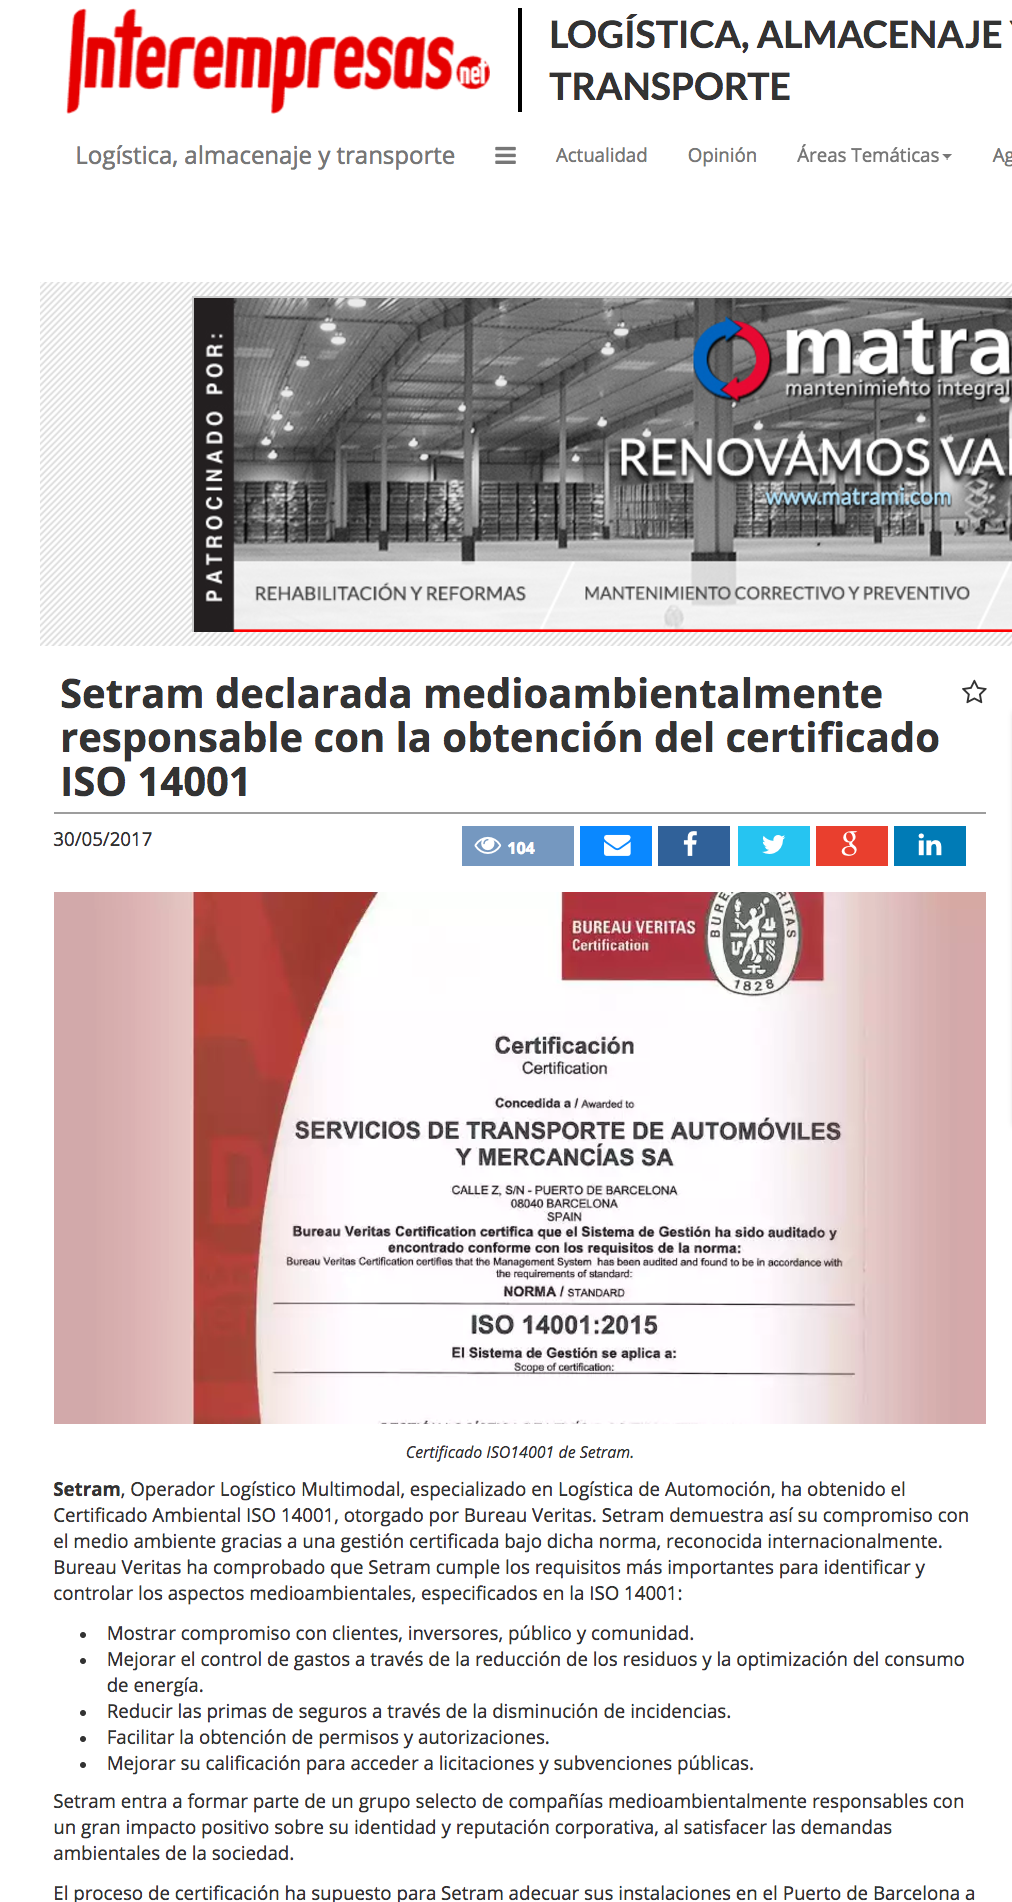 SETRAM Noticia en Interempresas